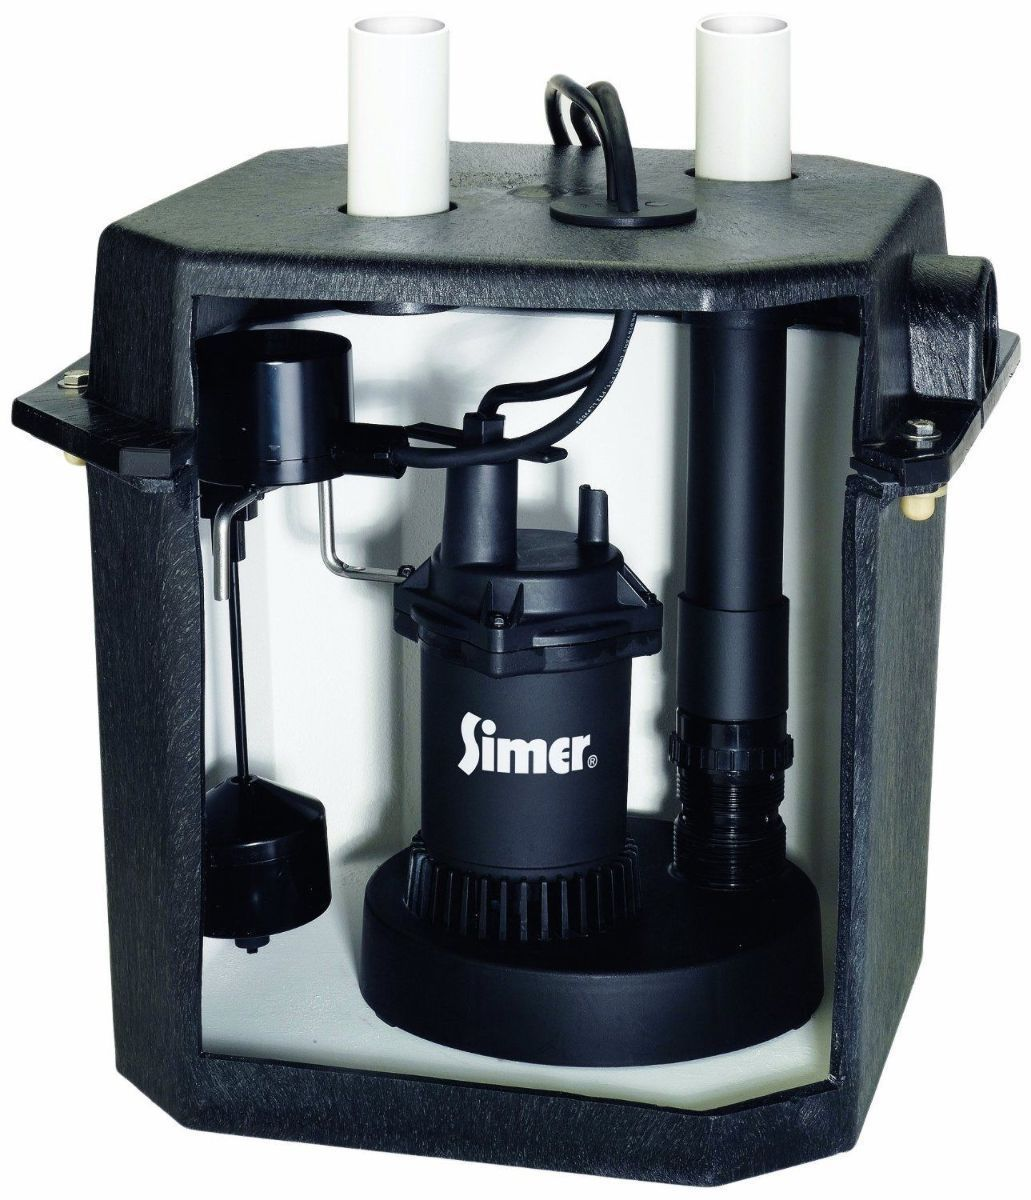 Pentair Simer 2925b 115v 6 Gallon Under Sink Laundry Pump System With Tank Laundry Sink Sump Pump Sink